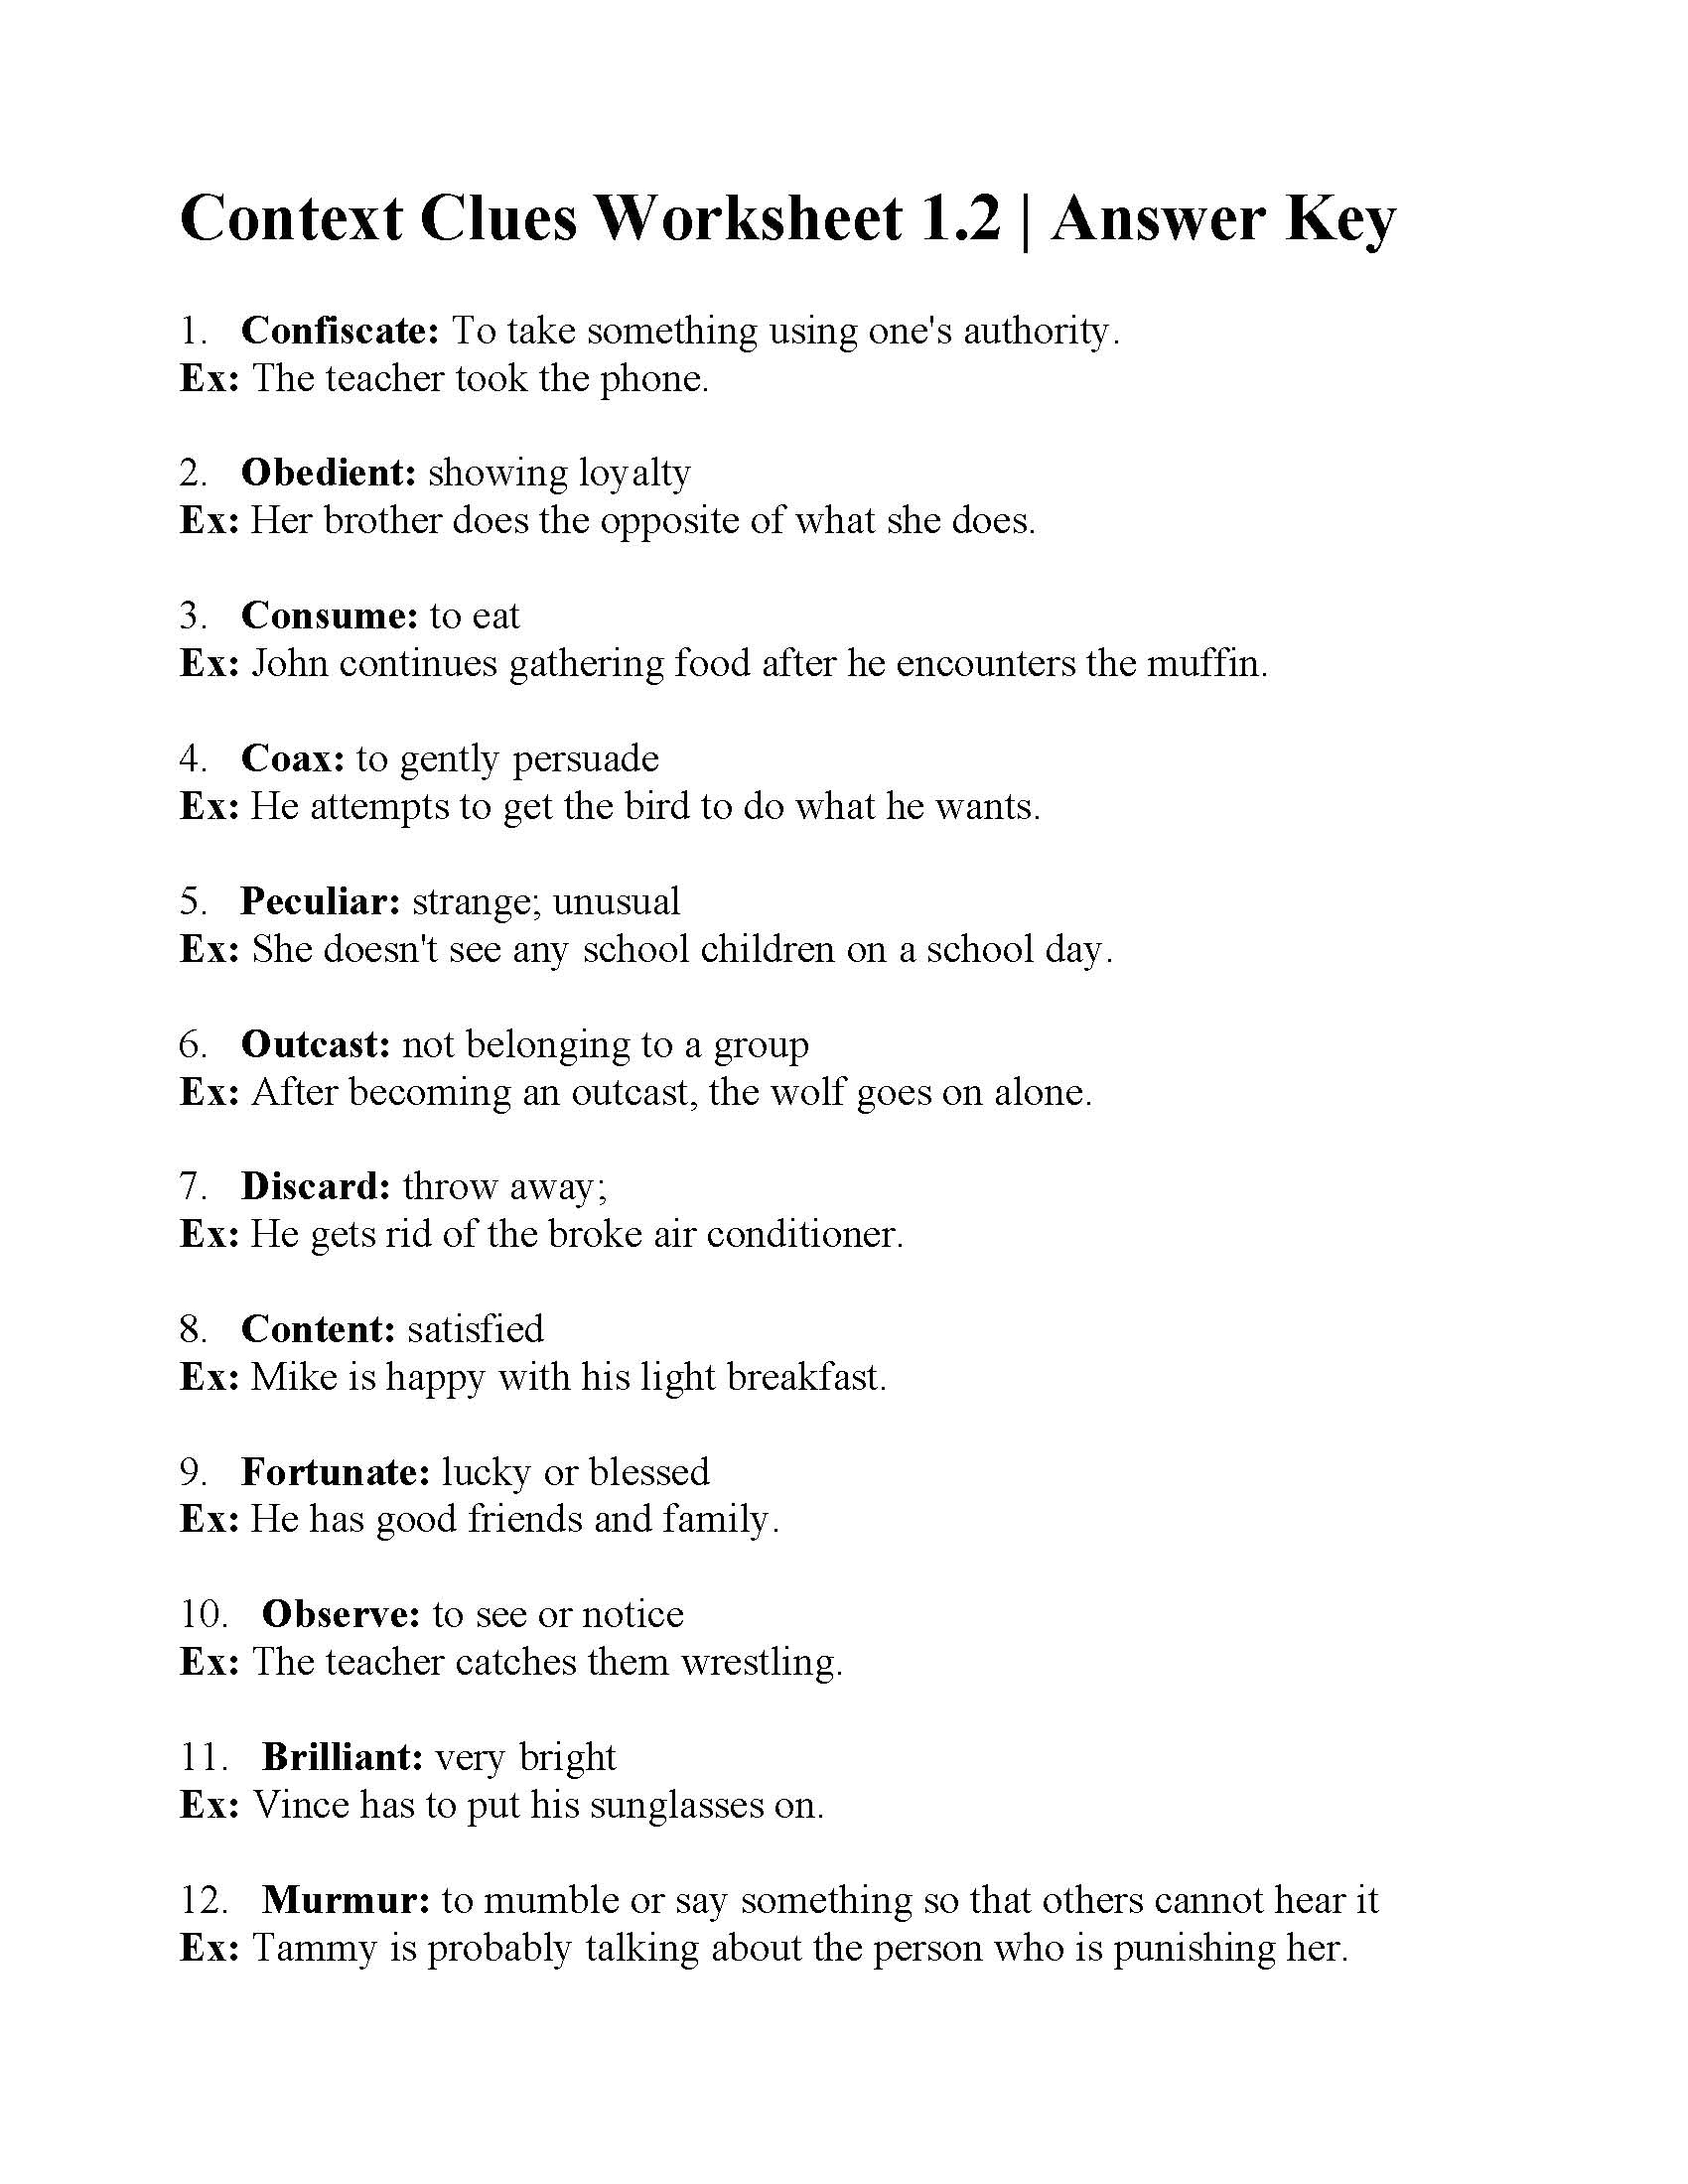 Context Clues Worksheet 1 2